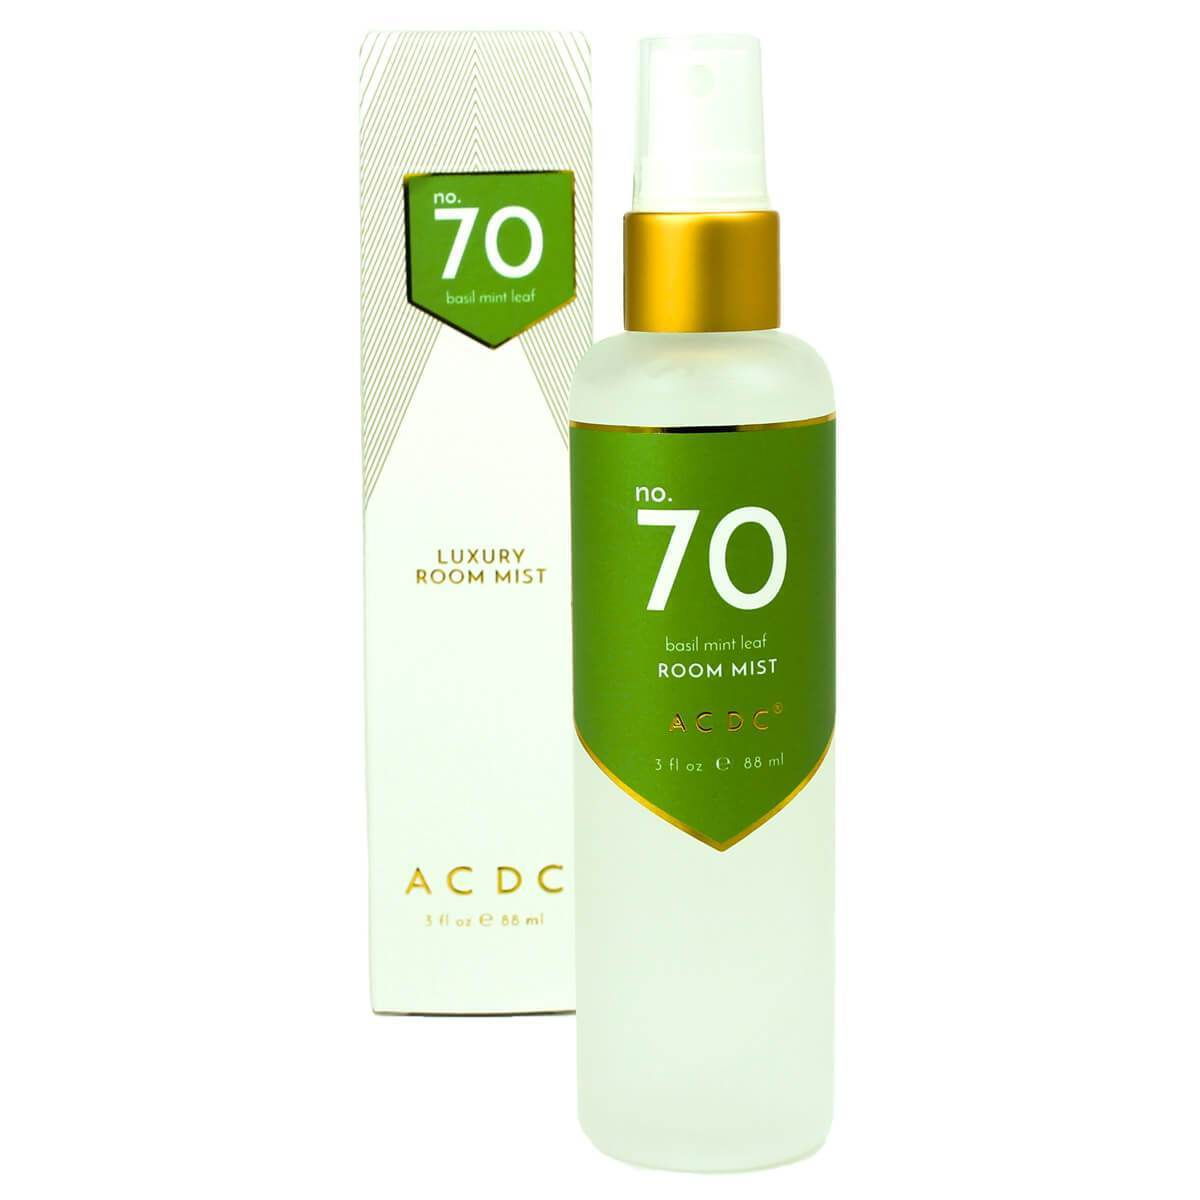 ACDC Room Sprays No. 70 Basil Mint Room Mist